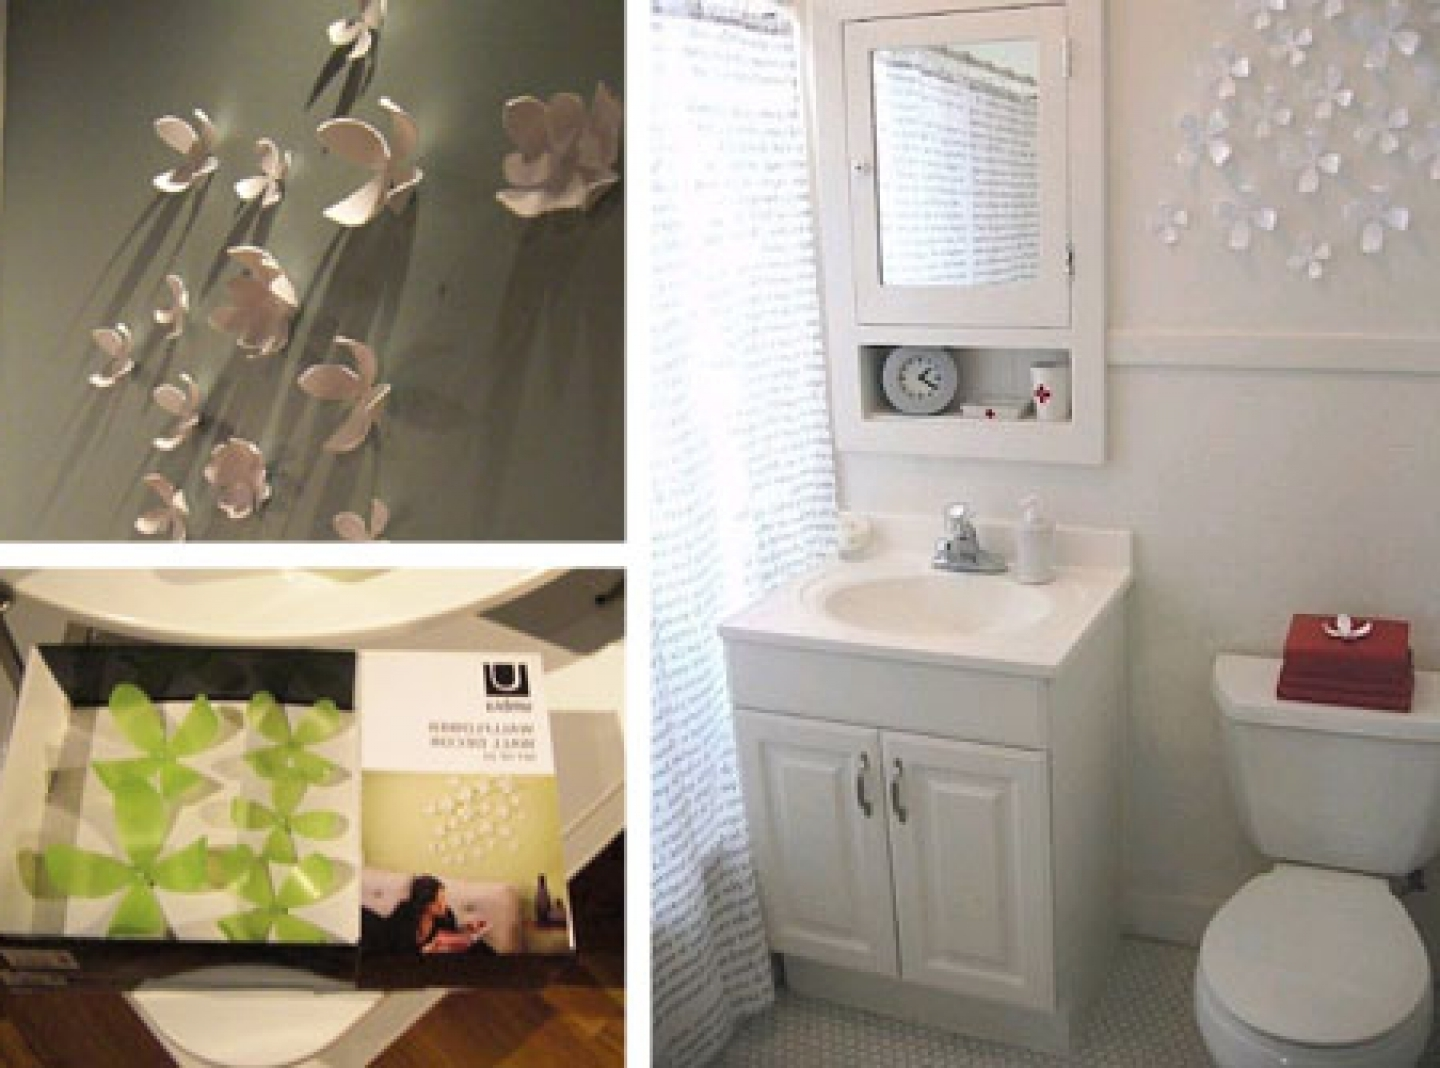 Widely Used Bathroom Wall Art Decors Within Beautify Your Bathroom With Bathroom Accessories – Contendsocial (View 12 of 15)